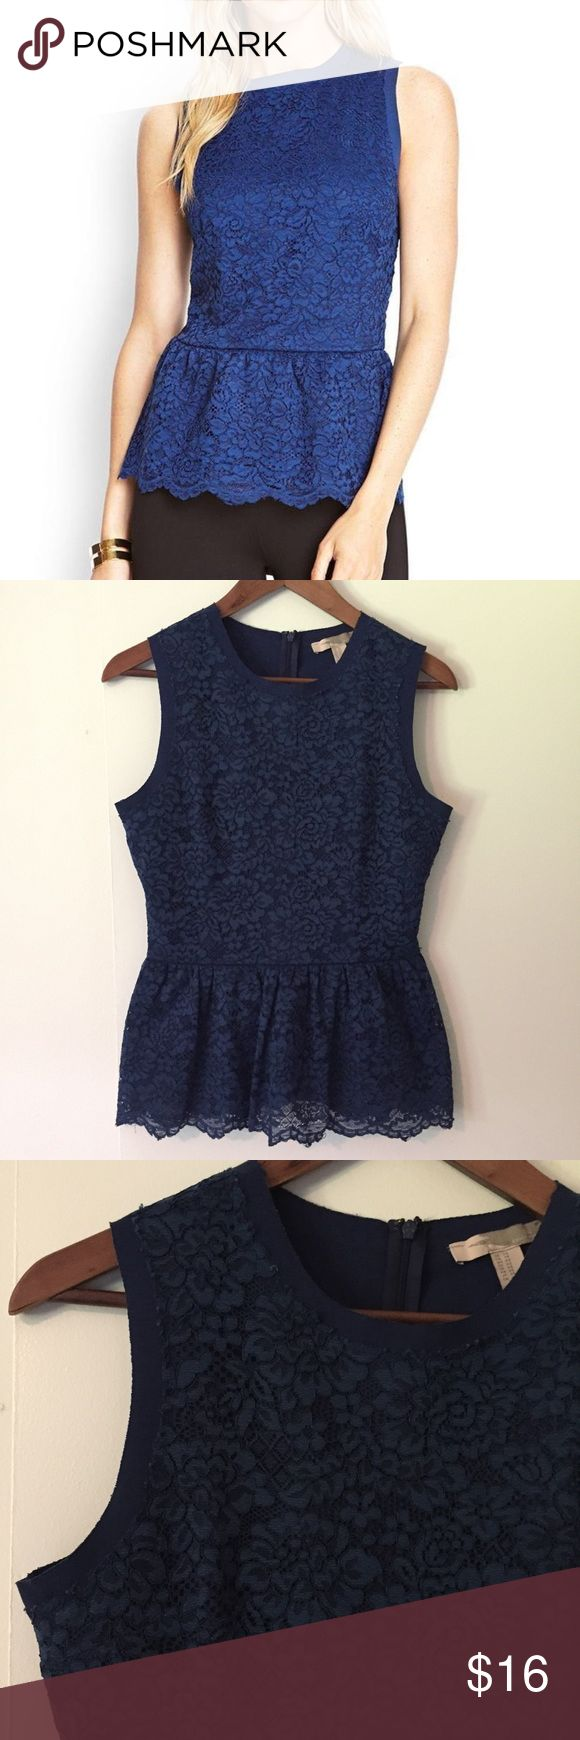 Forever 21 navy lace peplum sleeveless top sz XS Forever 21 navy lace peplum sleeveless top. Size: XS. Length: 21 inches. Chest: 17 inches. Navy blue. Back zip.  The super flattering peplum silhouette streamlines this feminine floral lace top, and a hint of stretch makes for a perfect fit. Great preowned condition. So pretty with a skirt or jeans! (Stock photo via forever21.com) Forever 21 Tops Tank Tops